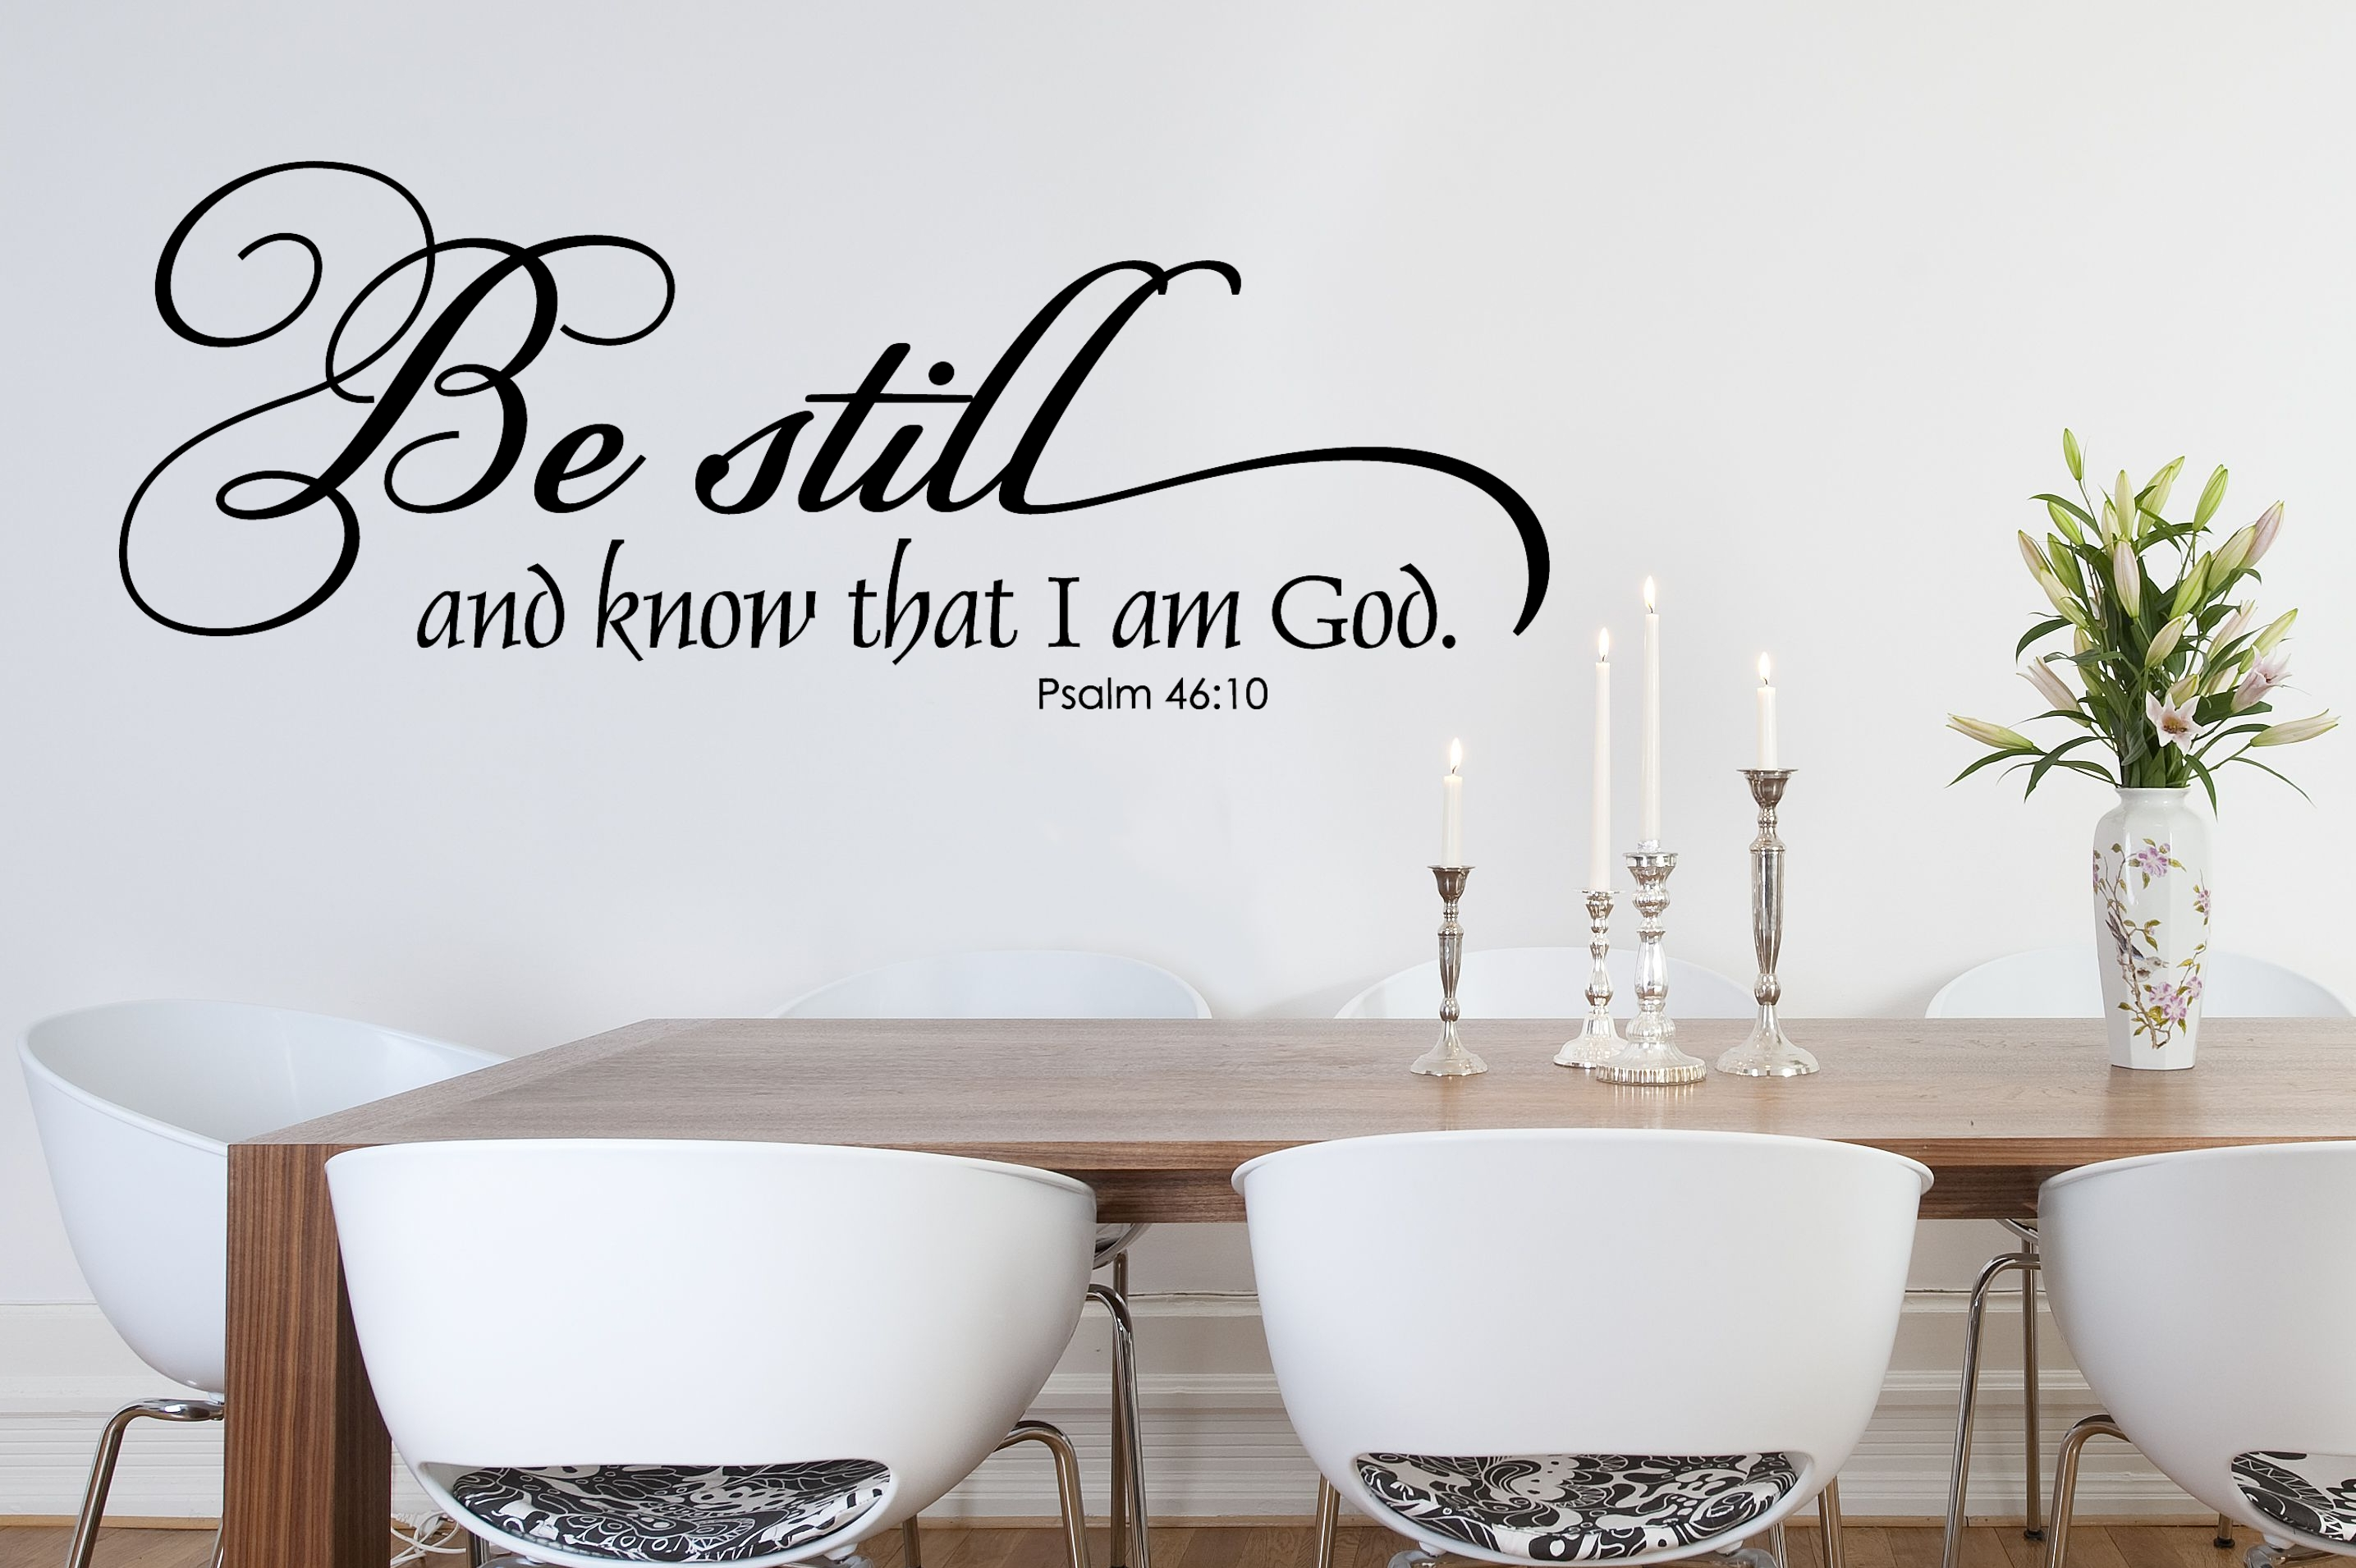 Christian Wall Decals With Scripture Vinyl Wall Art (View 7 of 20)